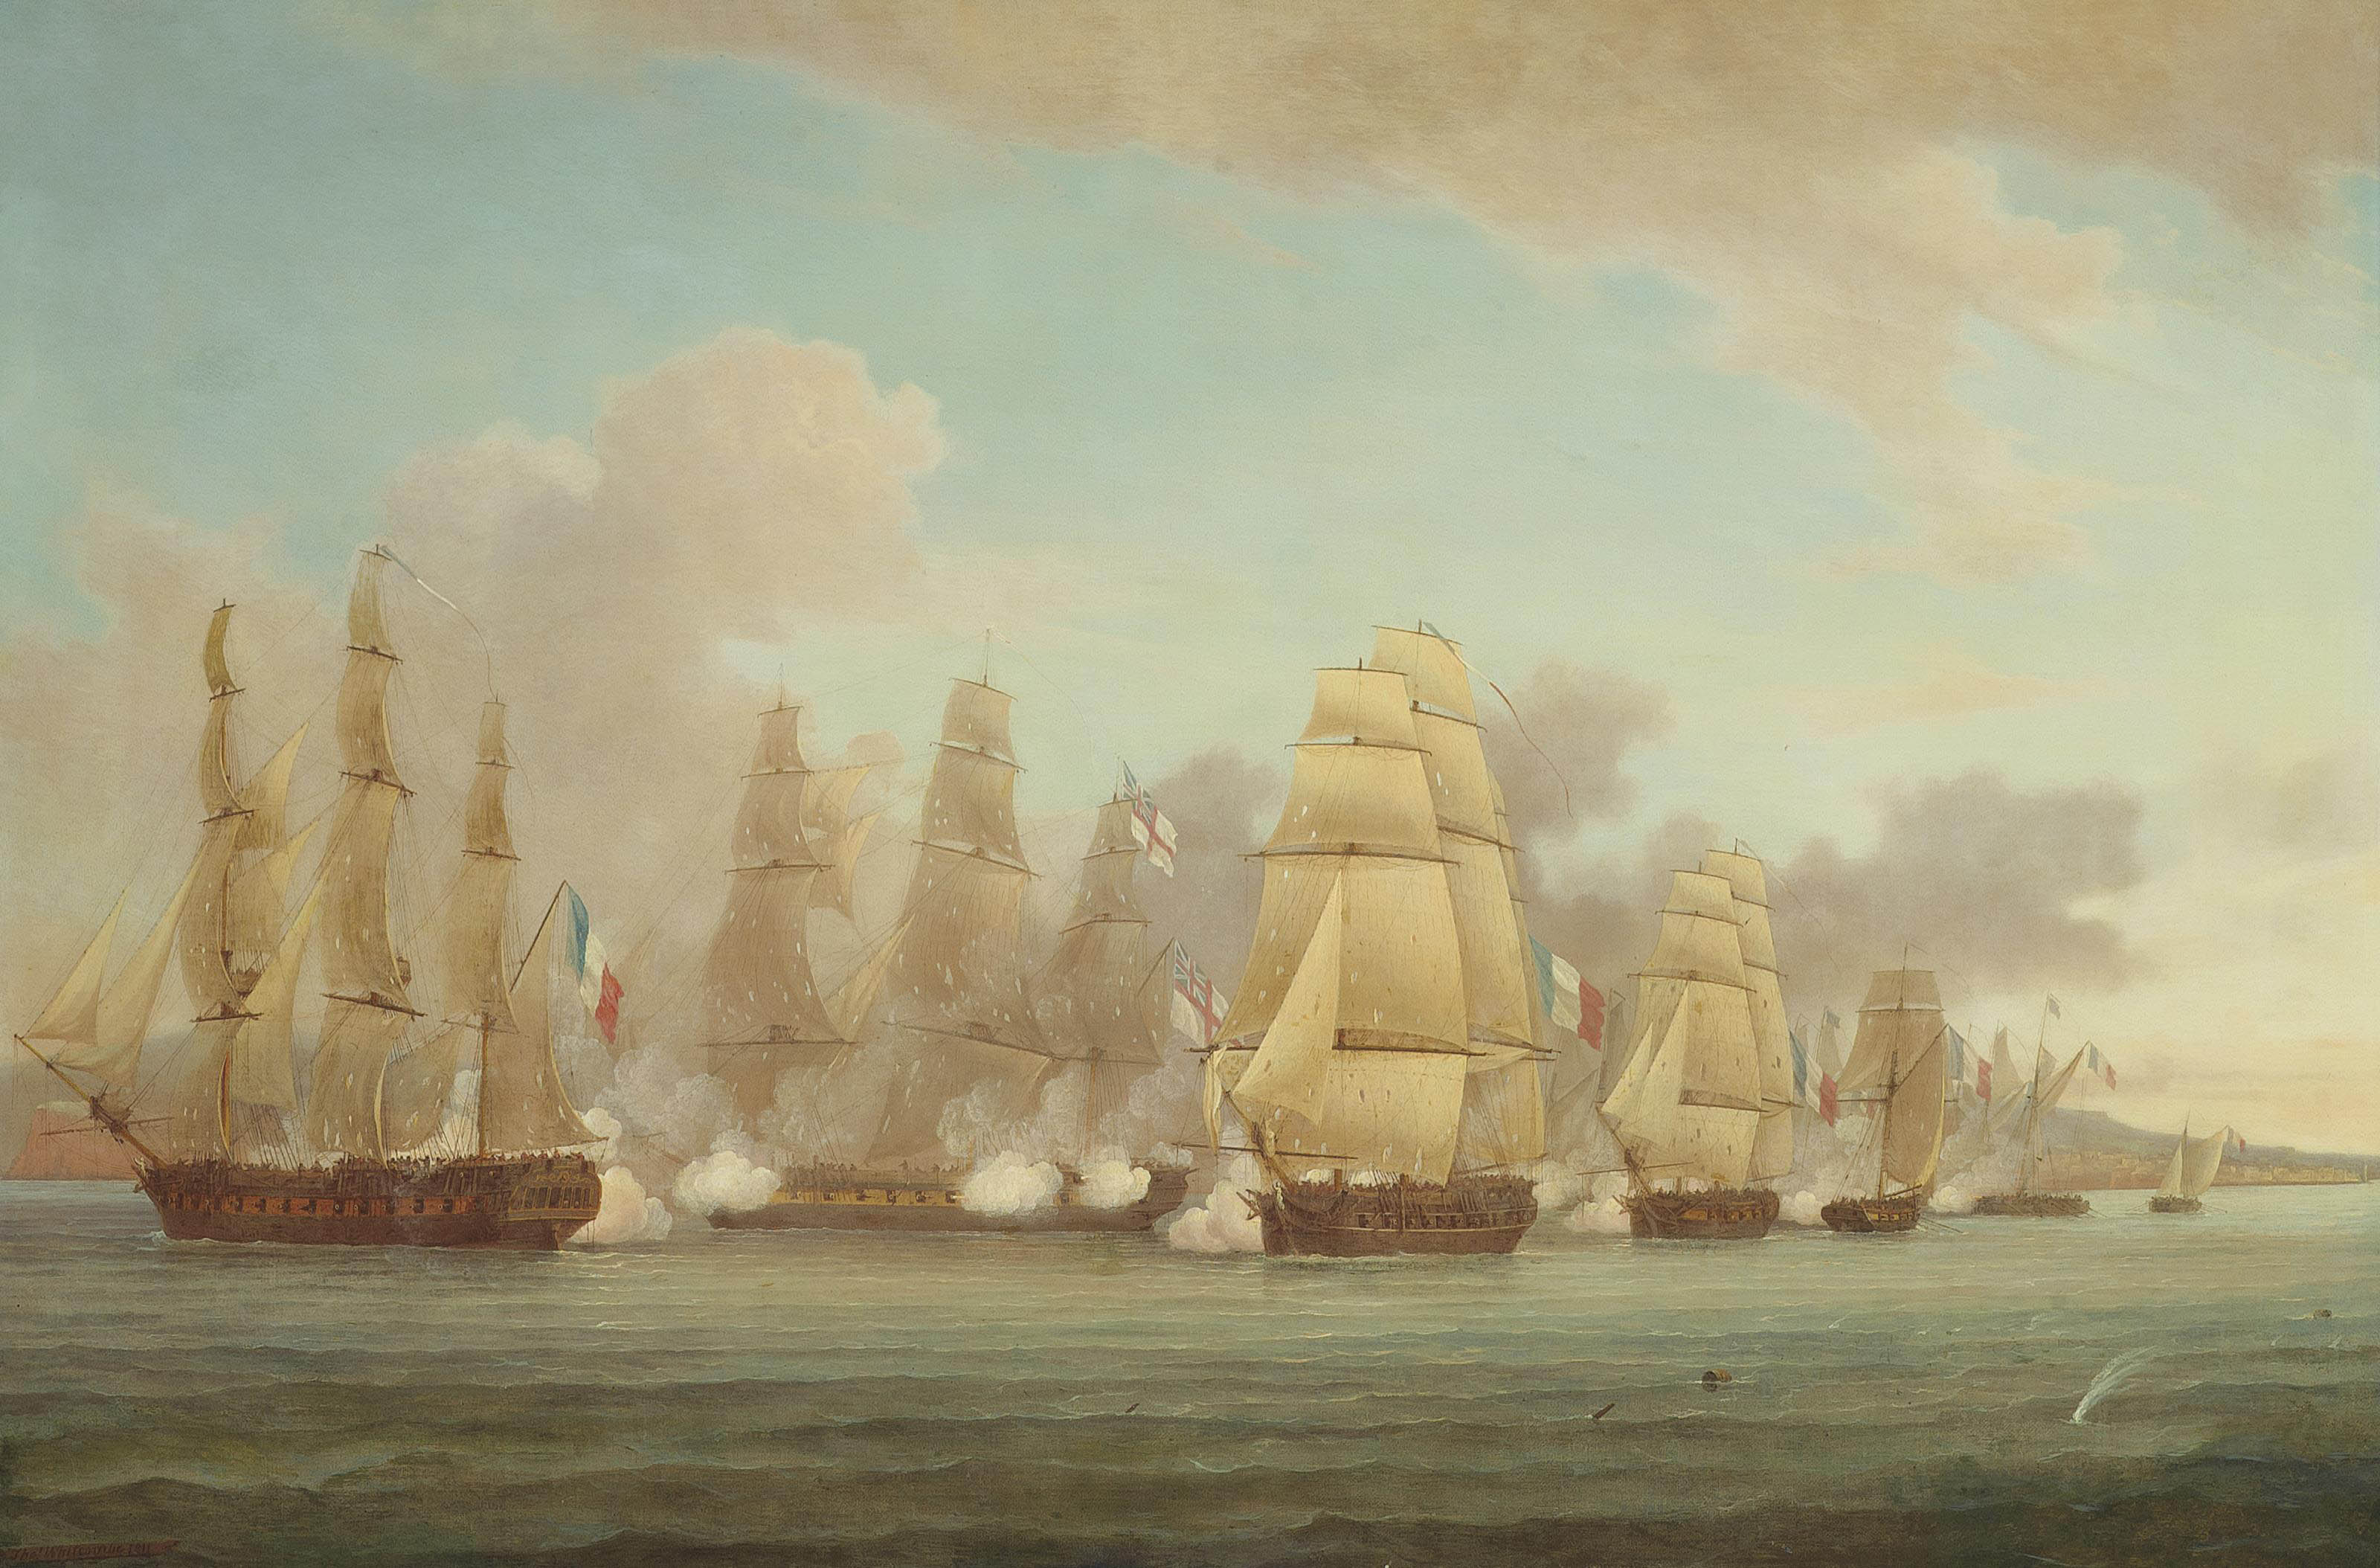 H.M.S. Spartan engaging a French squadron in the Bay of Naples and capturing the brig Sparvière, 3rd May 1810